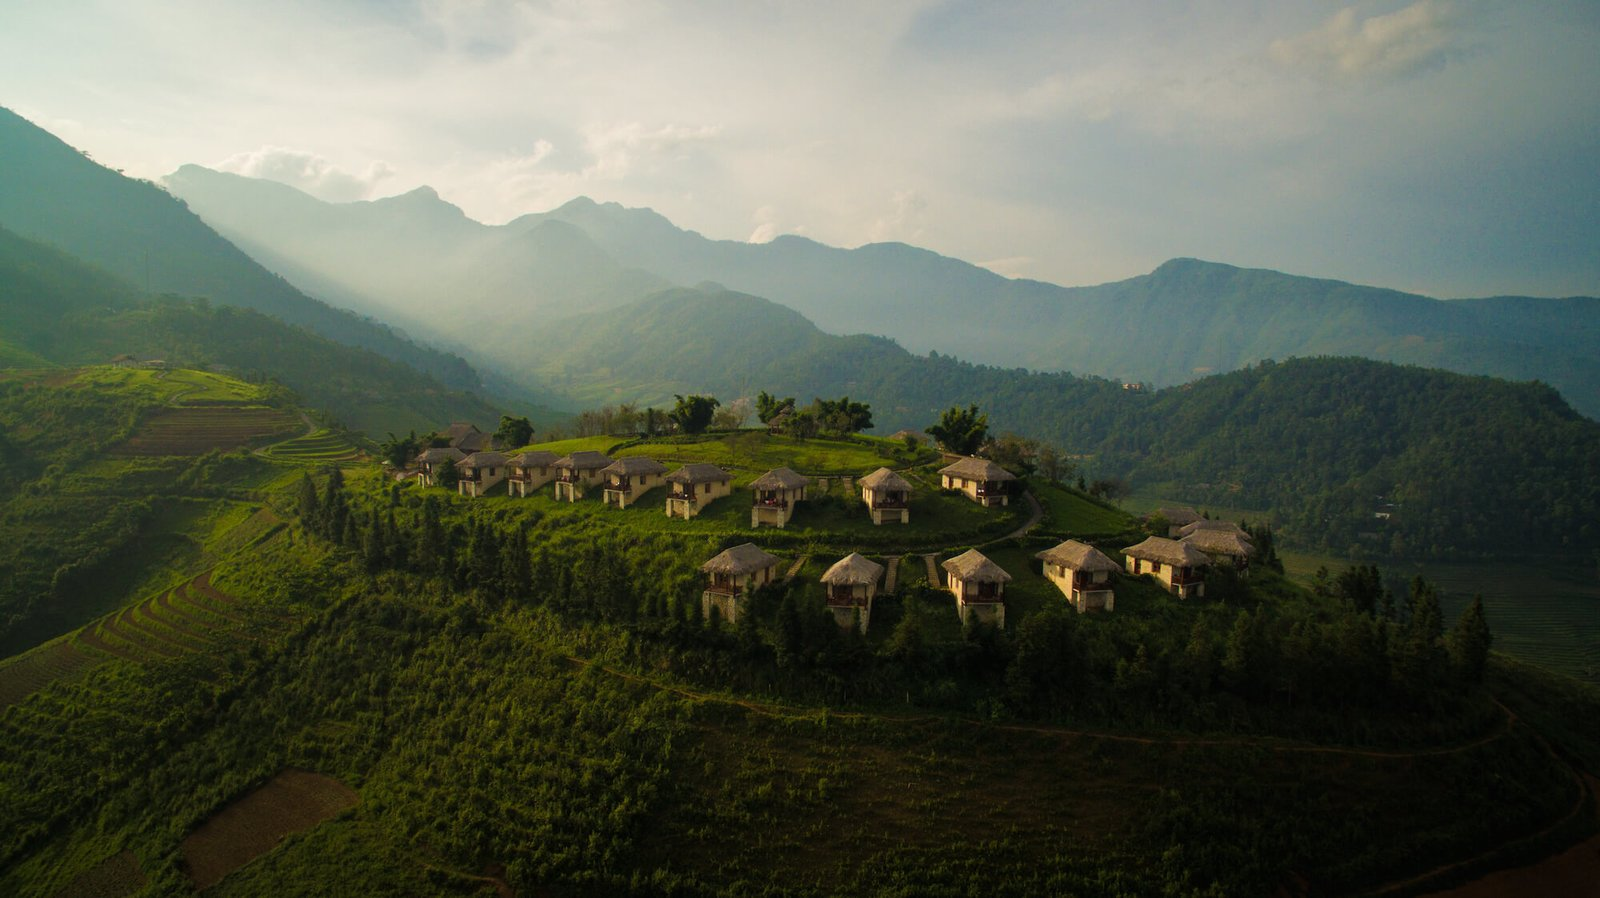 A sustainable lodge in Sapa, north Vietnam, Topas Ecolodge is an ideal base for exploring the Hoang Lien Son mountain range and meeting the people of the illusive hill tribes who live in the villages in the region. The simple but pretty rooms all come with balconies that offer stunning views of the mountainous landscape.